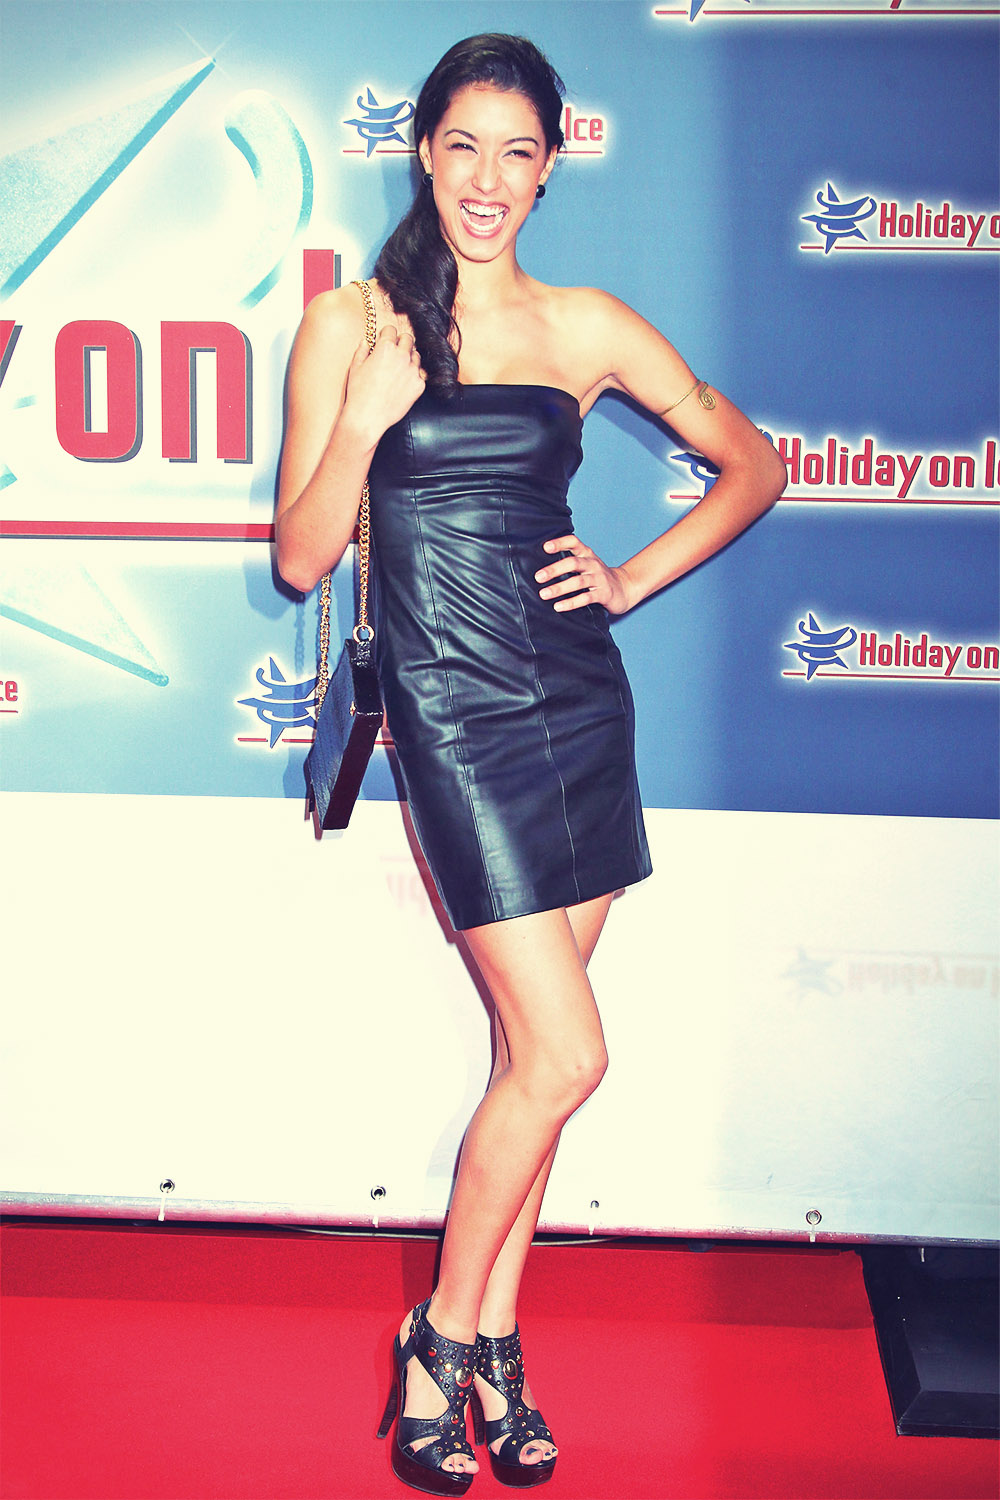 Rebecca Mir attends Gala Premiere Holiday on Ice